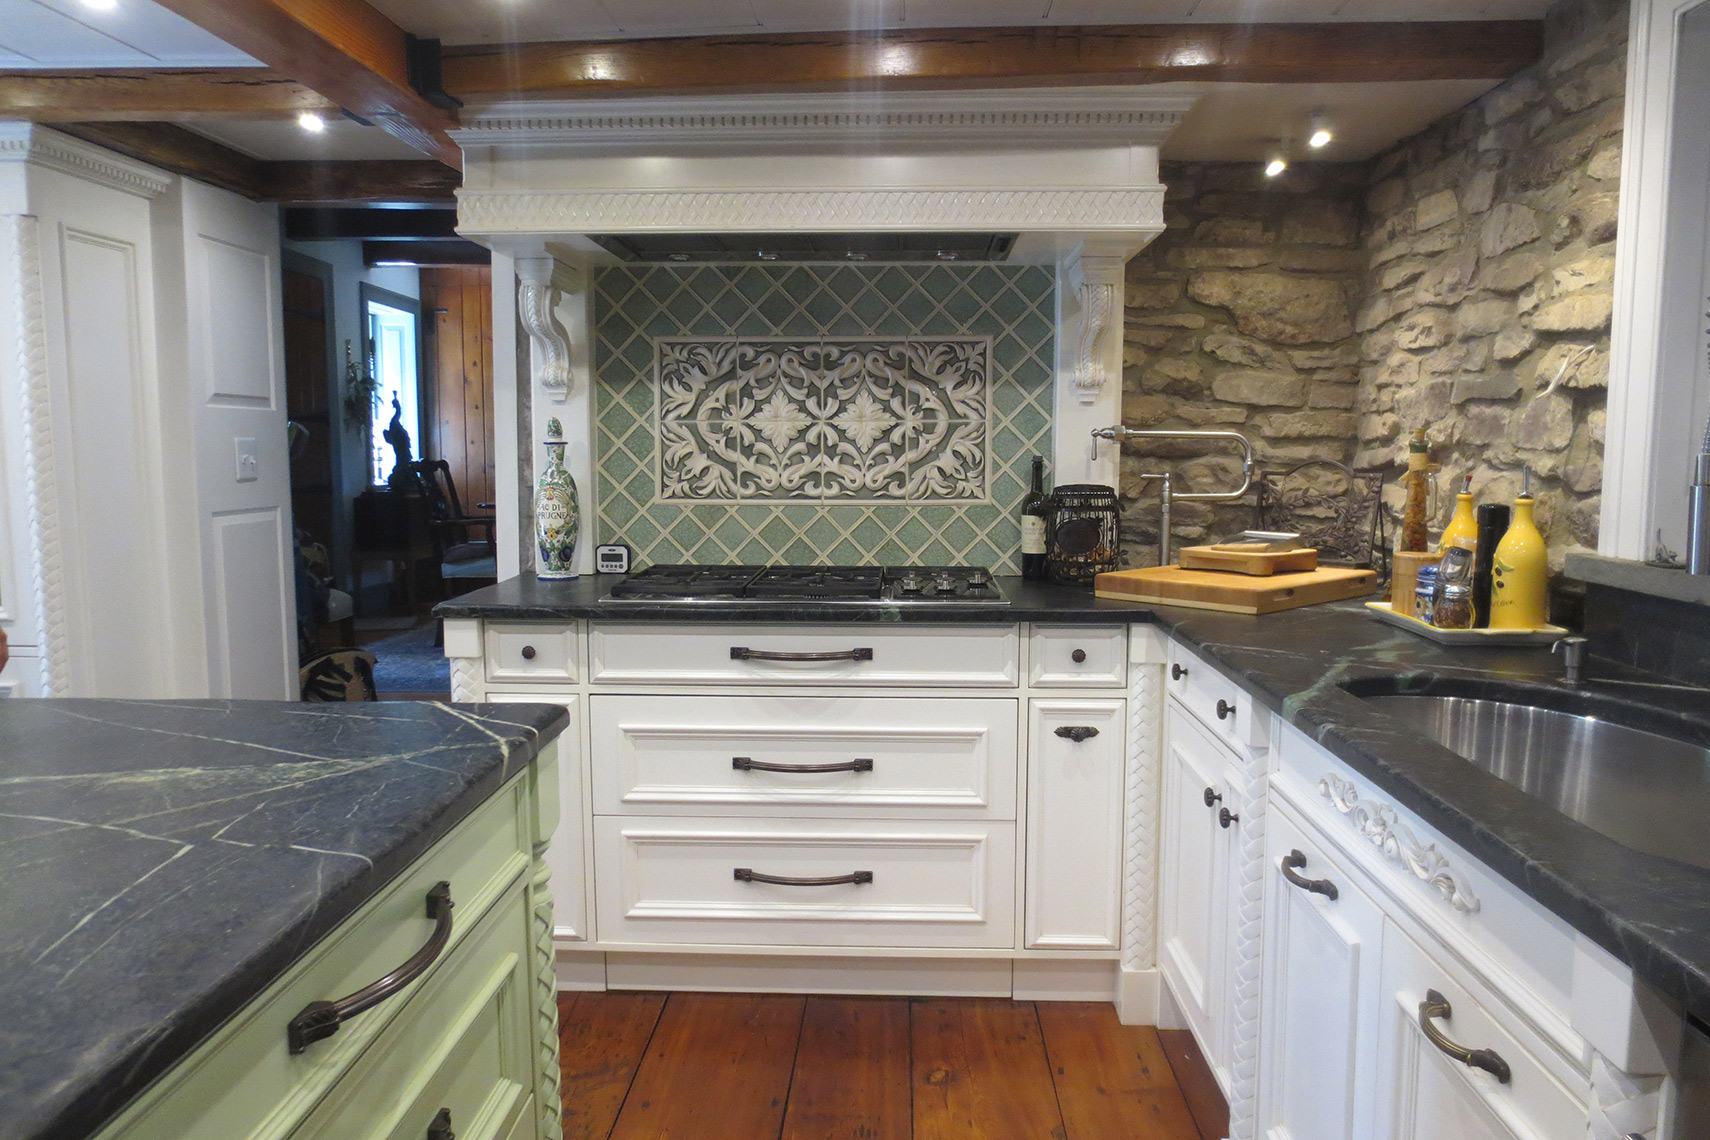 Traditional, classic custom kitchen cabinets, painted, carvings 4